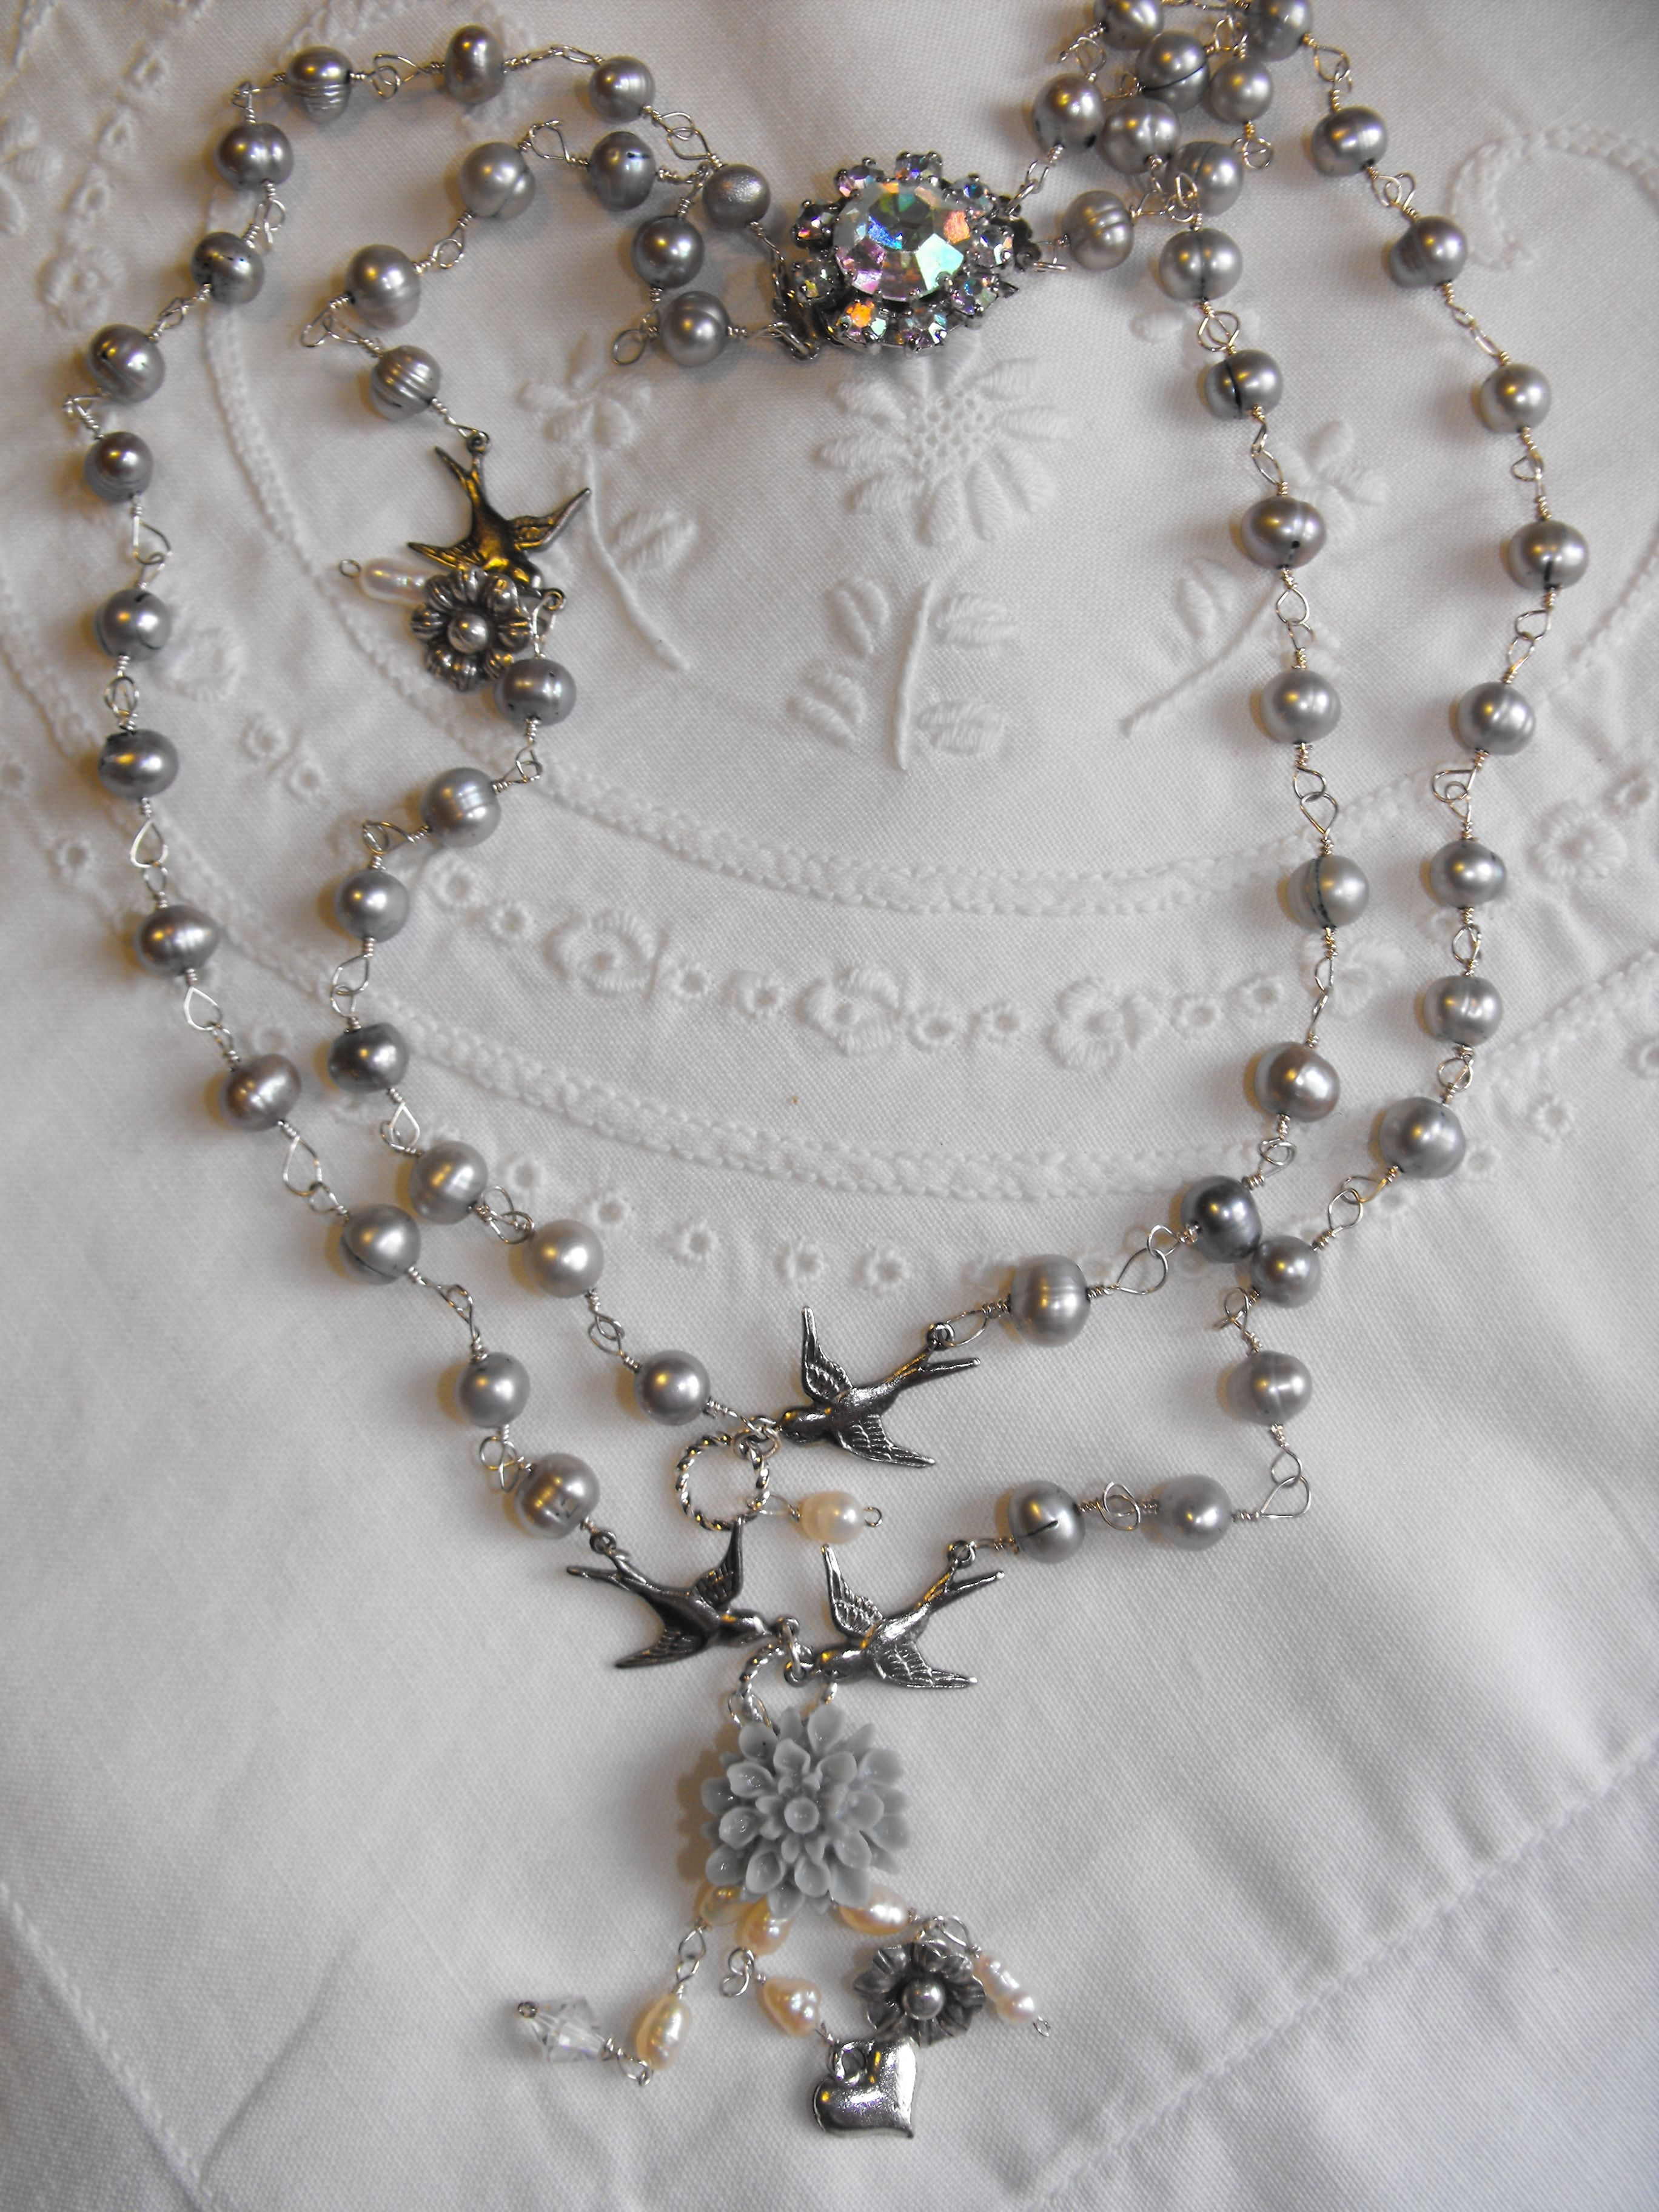 Flights Of Fancy Necklace | Jewelry: Wire Necklaces, Pendants, and ...